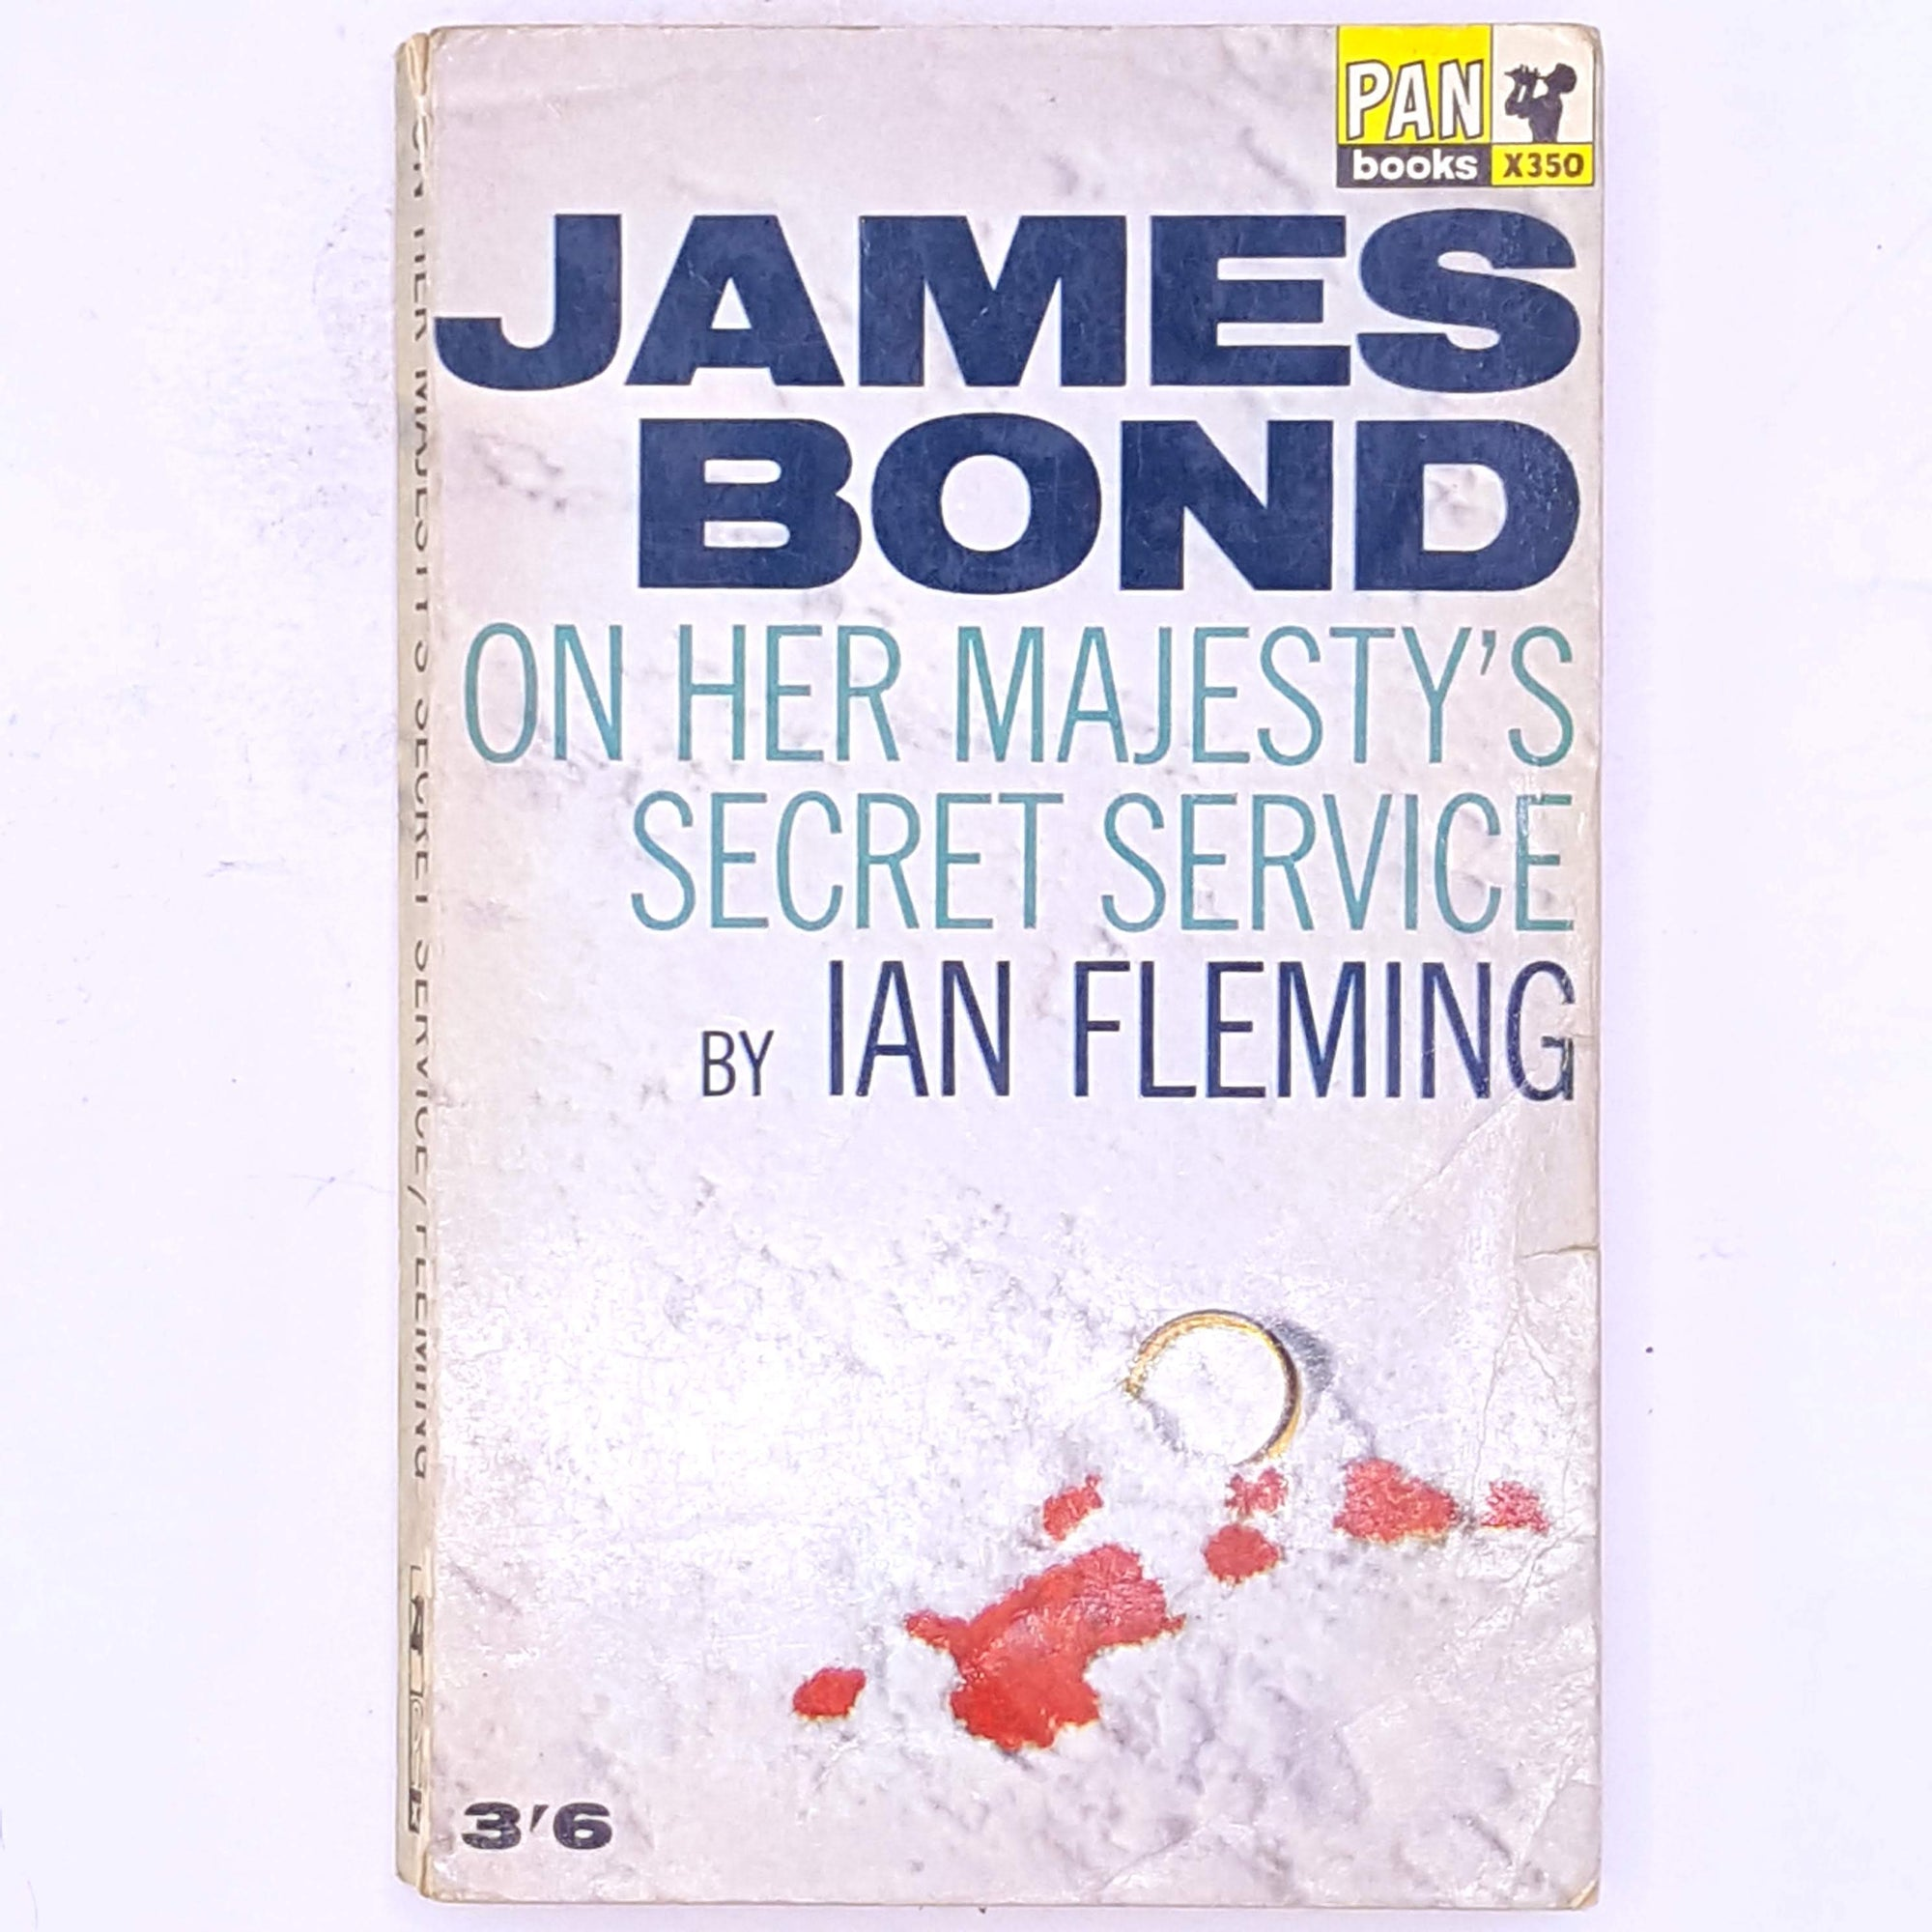 james-bond-spy-crime-mystery-British-secret-agent-antique-thrift-books-country-house-library-classic-old-thriller-secret-service-vintage-ian-fleming-on-her-majesty's-secret-service-decorative-patterned-007-